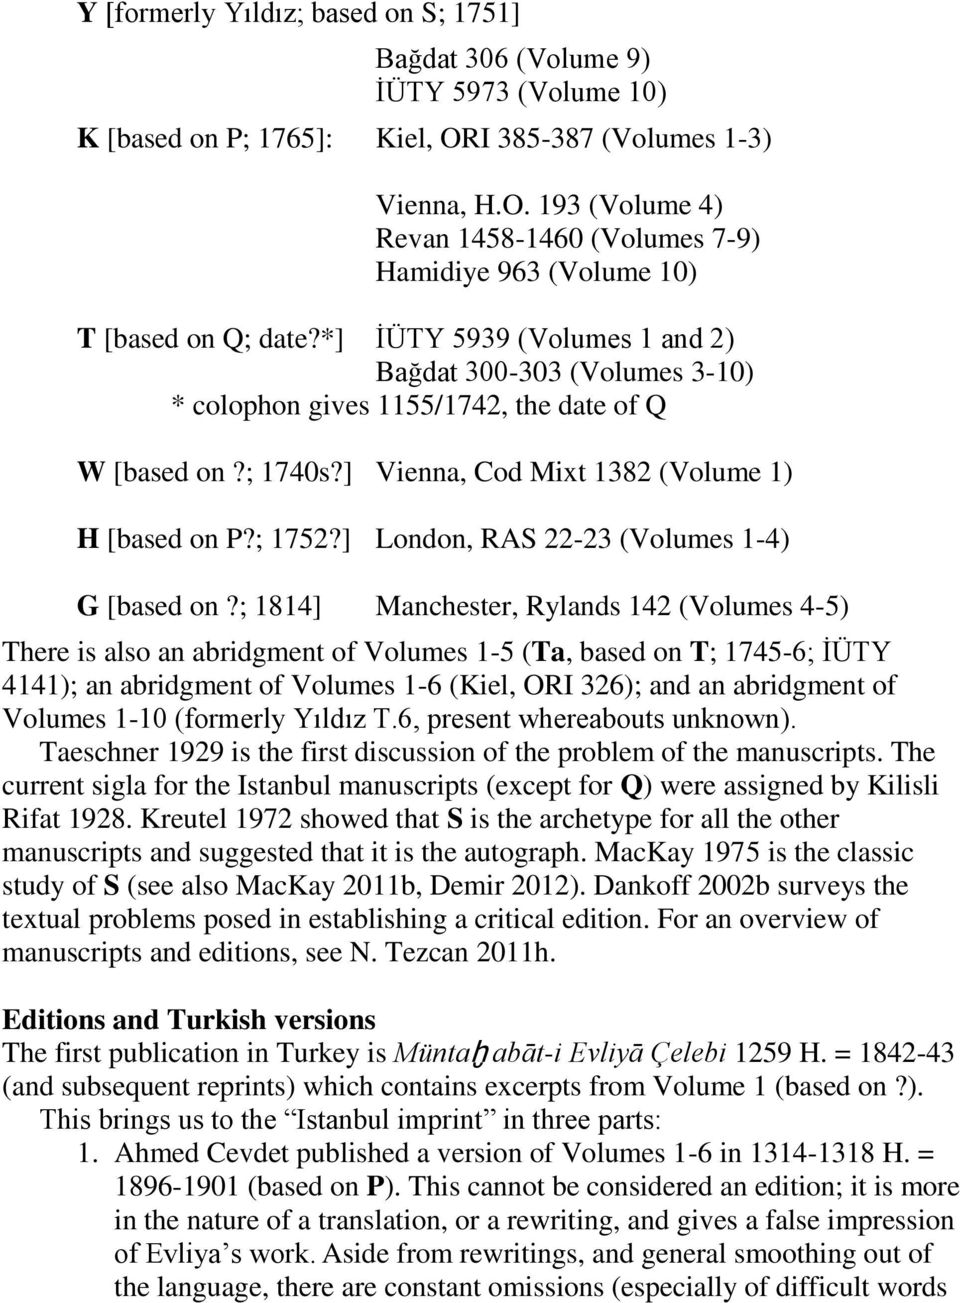 *] İÜTY 5939 (Volumes 1 and 2) Bağdat 300-303 (Volumes 3-10) * colophon gives 1155/1742, the date of Q W [based on?; 1740s?] Vienna, Cod Mixt 1382 (Volume 1) H [based on P?; 1752?